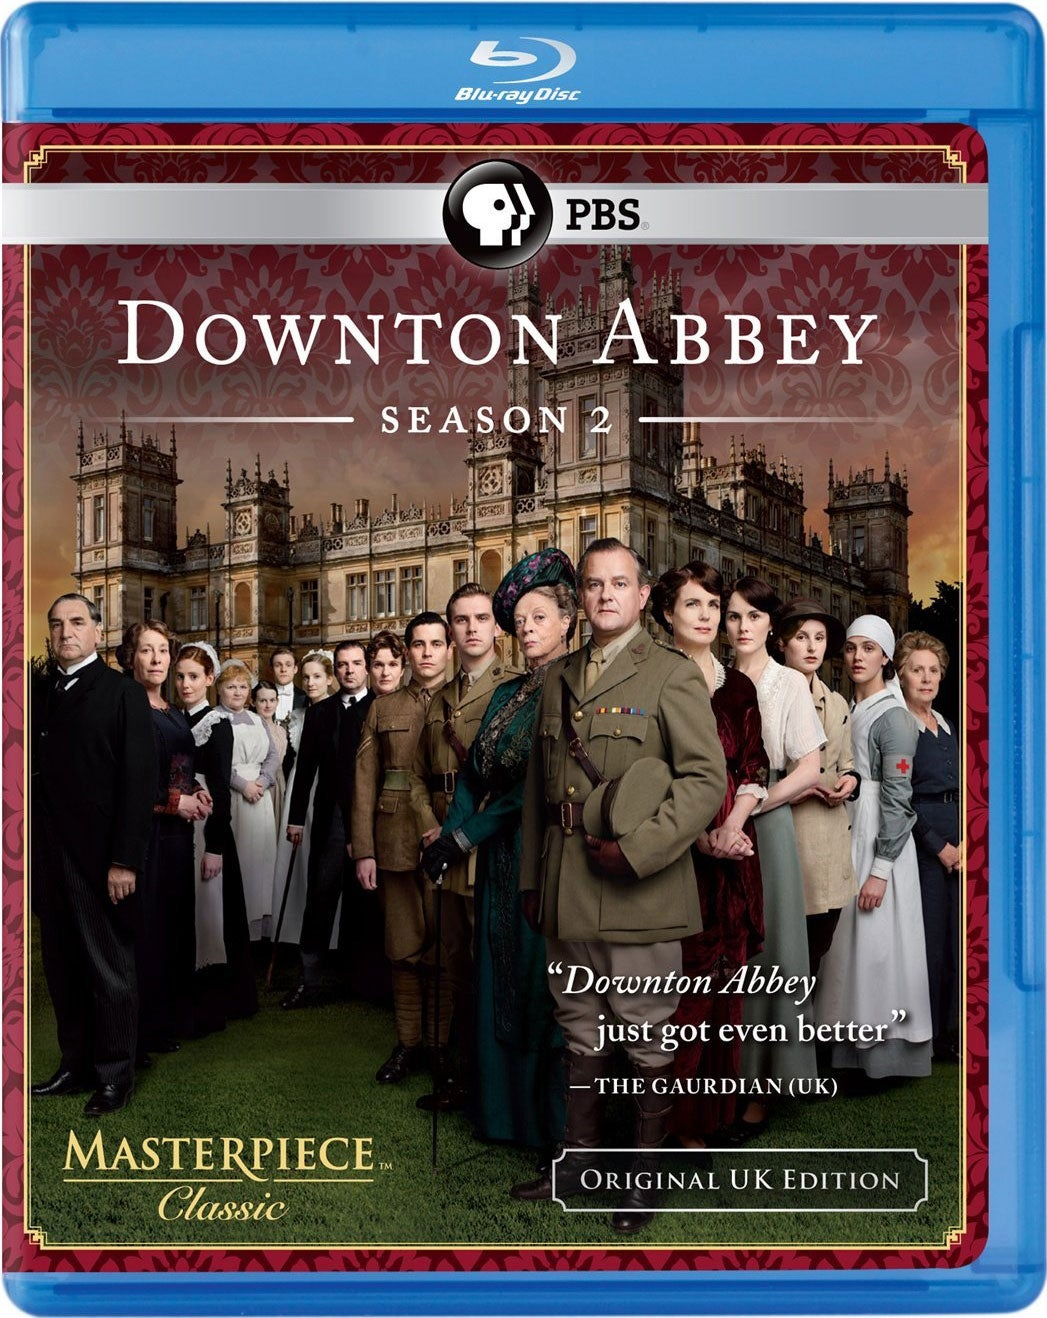 Masterpiece Classic: Downton Abbey Season 2 (Blu-ray Disc)